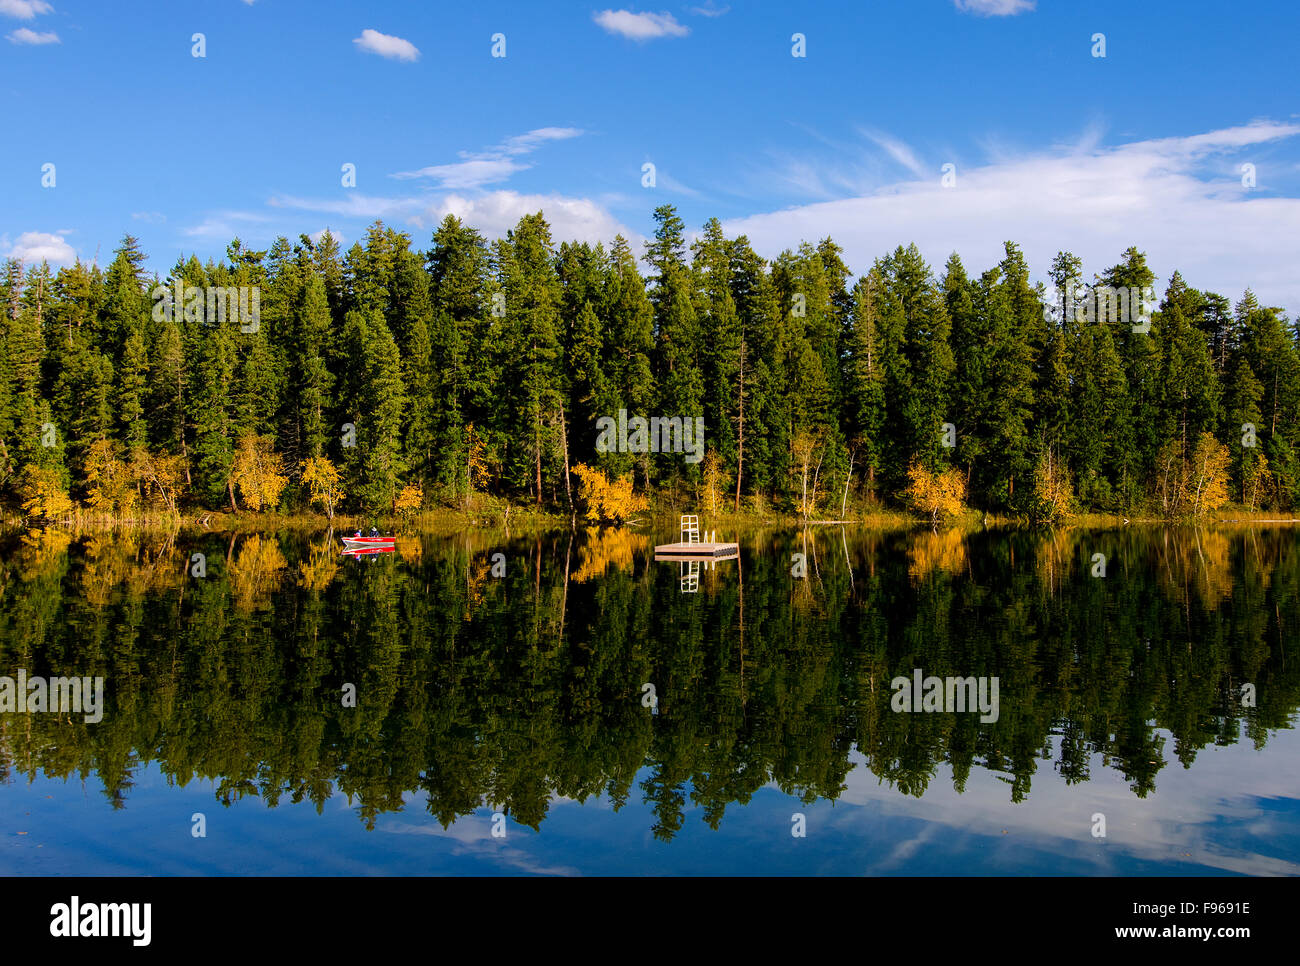 Boaters enjoy the early fall colours surrounding Gardom Lake, near Salmon Arm, in British Columbia's Shuswap - Stock Image